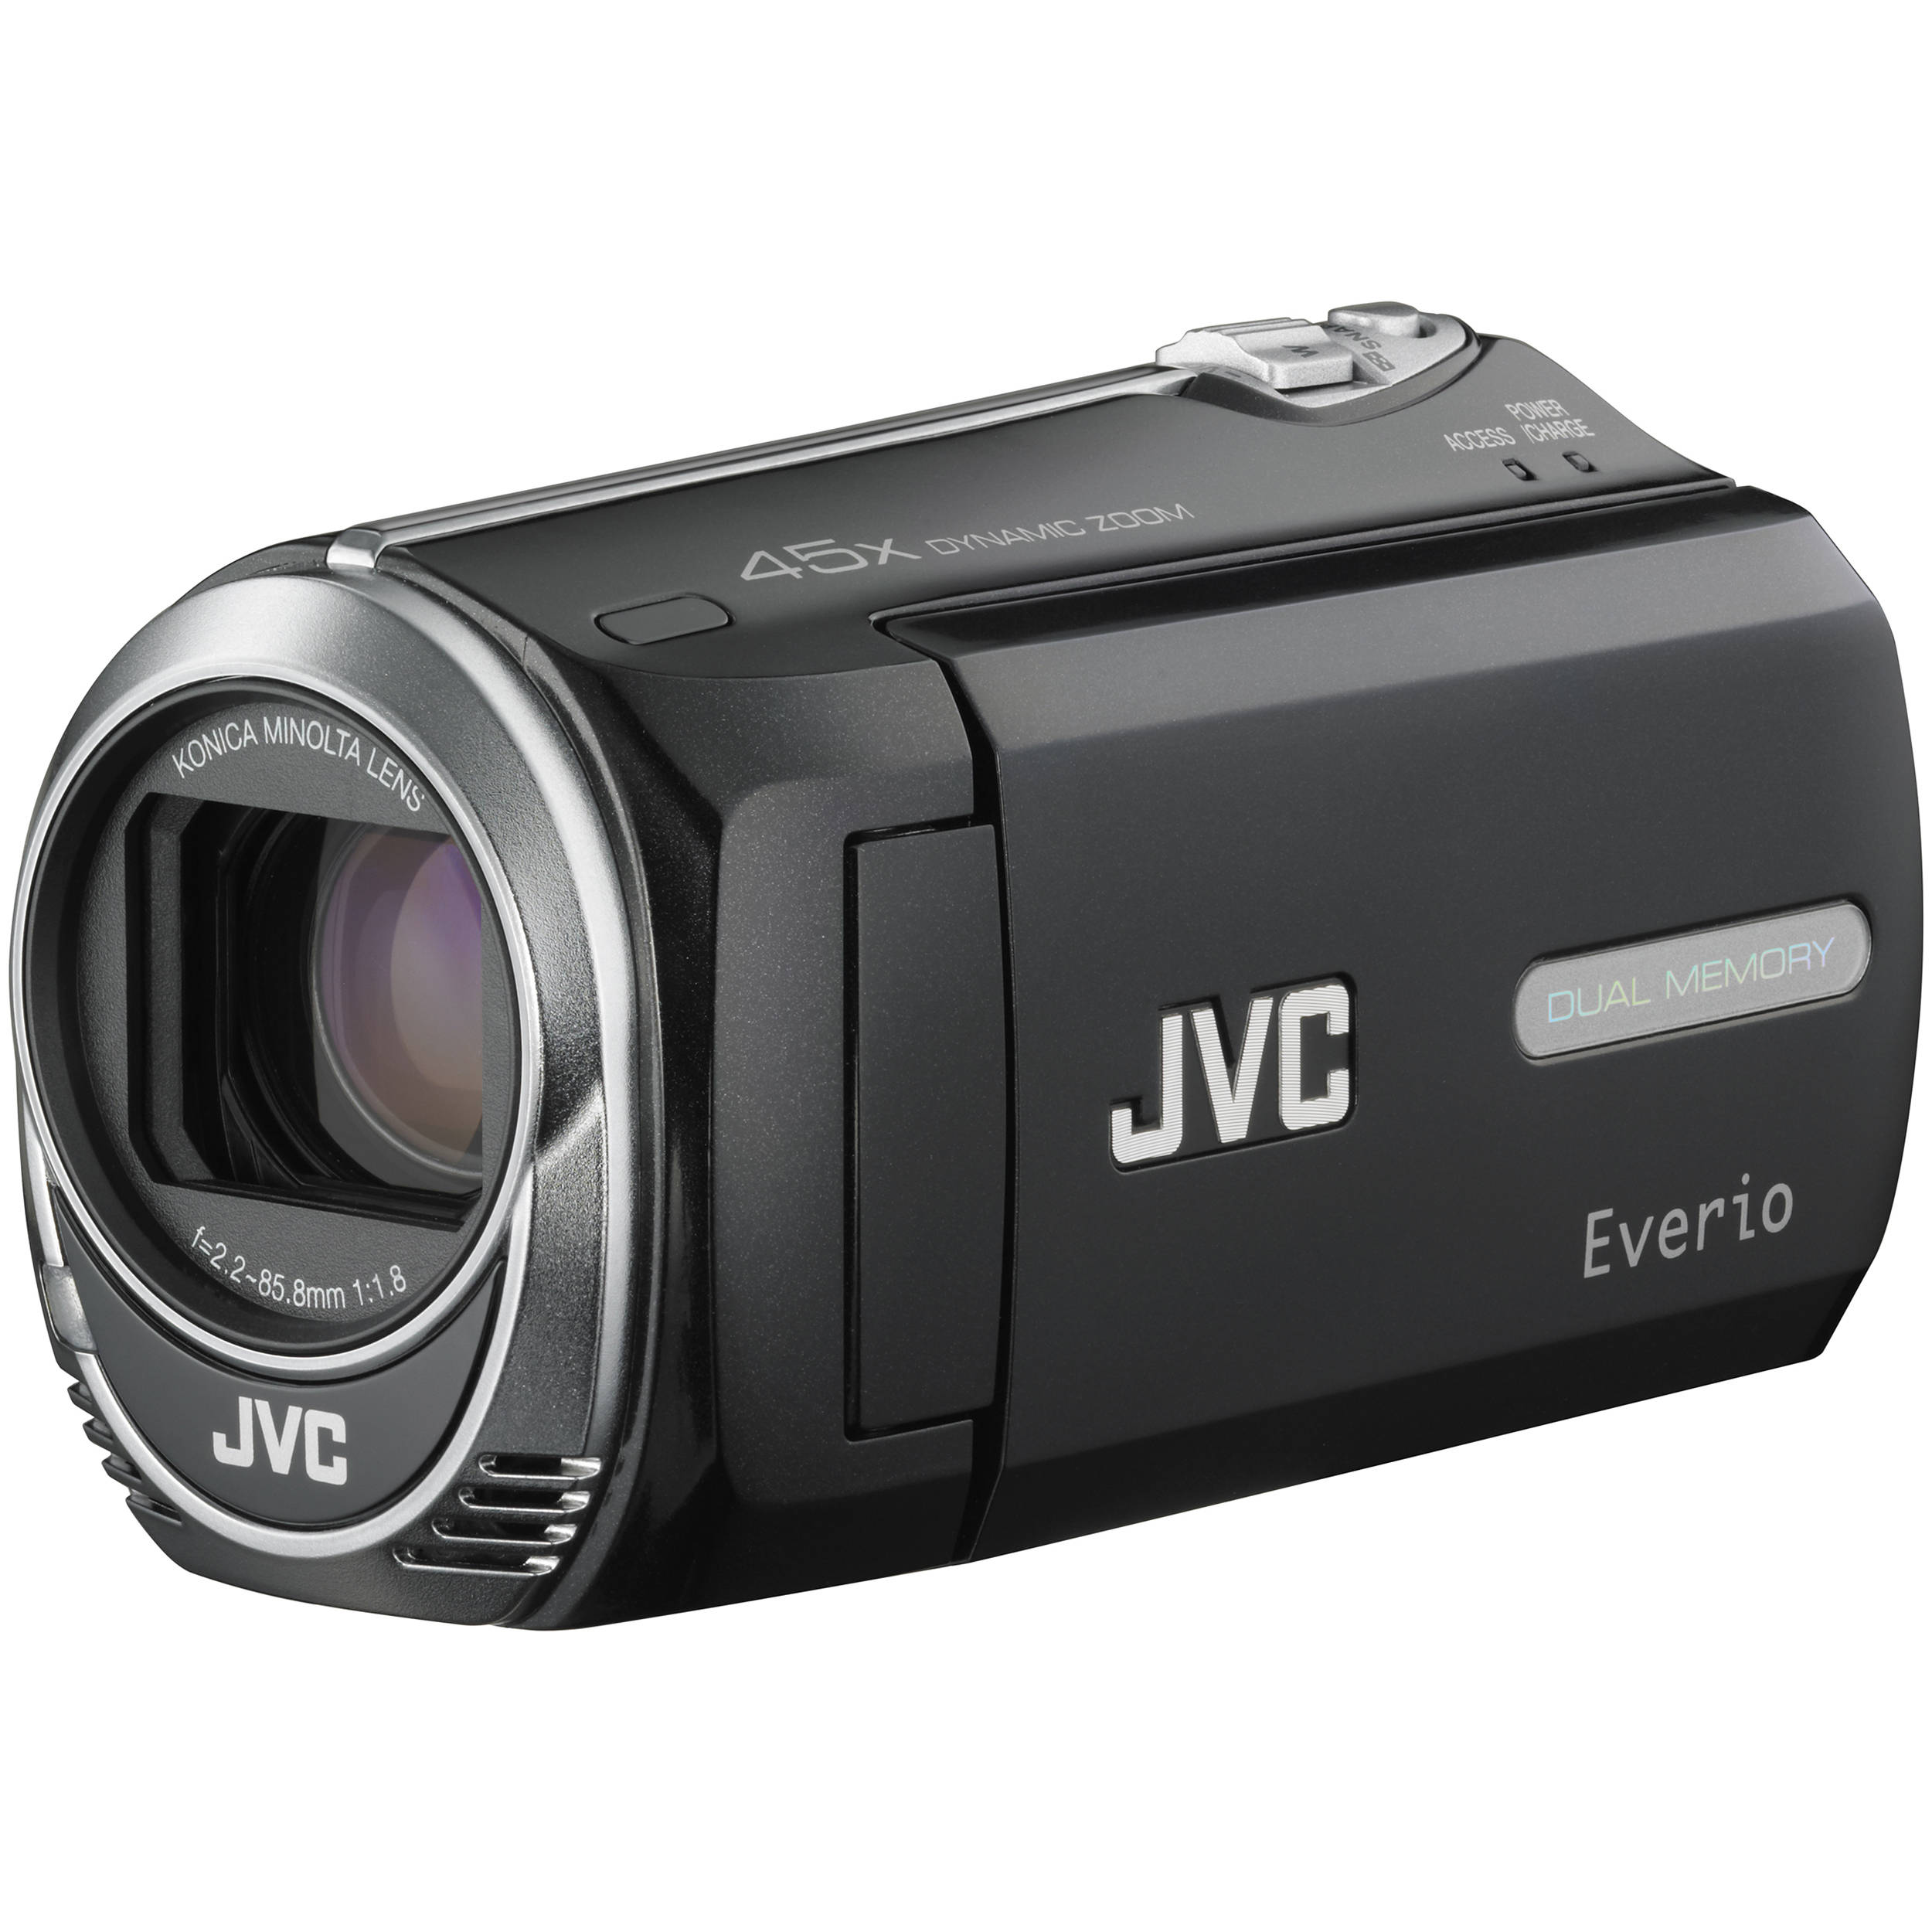 jvc gz ms250 everio s flash memory camera gzms250bus b h photo rh bhphotovideo com jvc everio 45x dynamic zoom manual JVC Everio Camcorder Manual